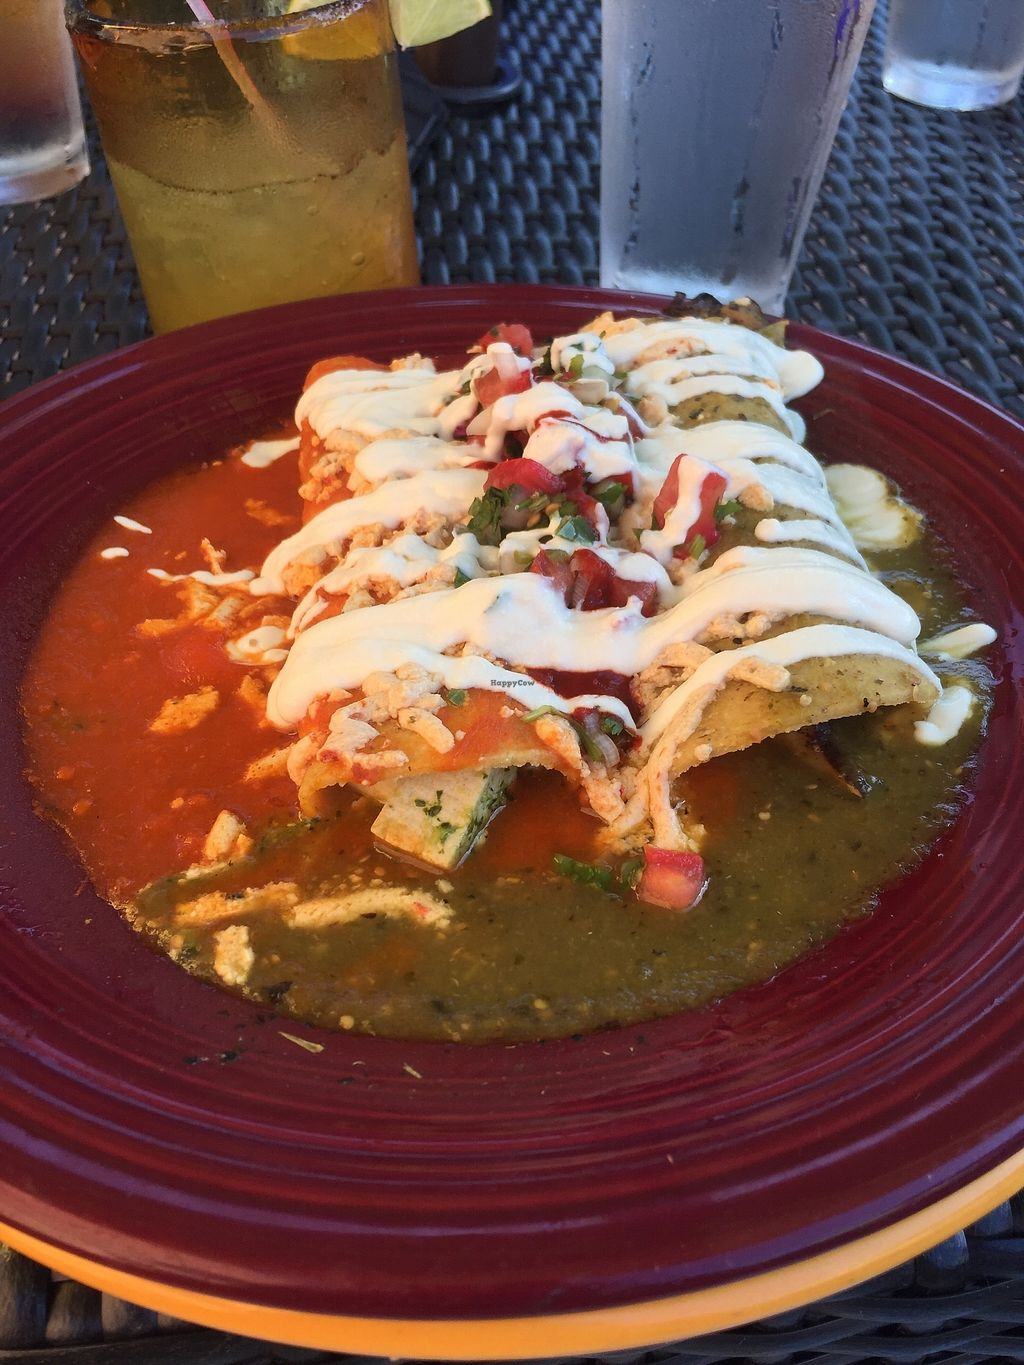 "Photo of Mexican Radio  by <a href=""/members/profile/KaitlynnGill"">KaitlynnGill</a> <br/>Tofu and wild mushroom enchiladas with red and green sauce <br/> July 6, 2017  - <a href='/contact/abuse/image/58204/277193'>Report</a>"